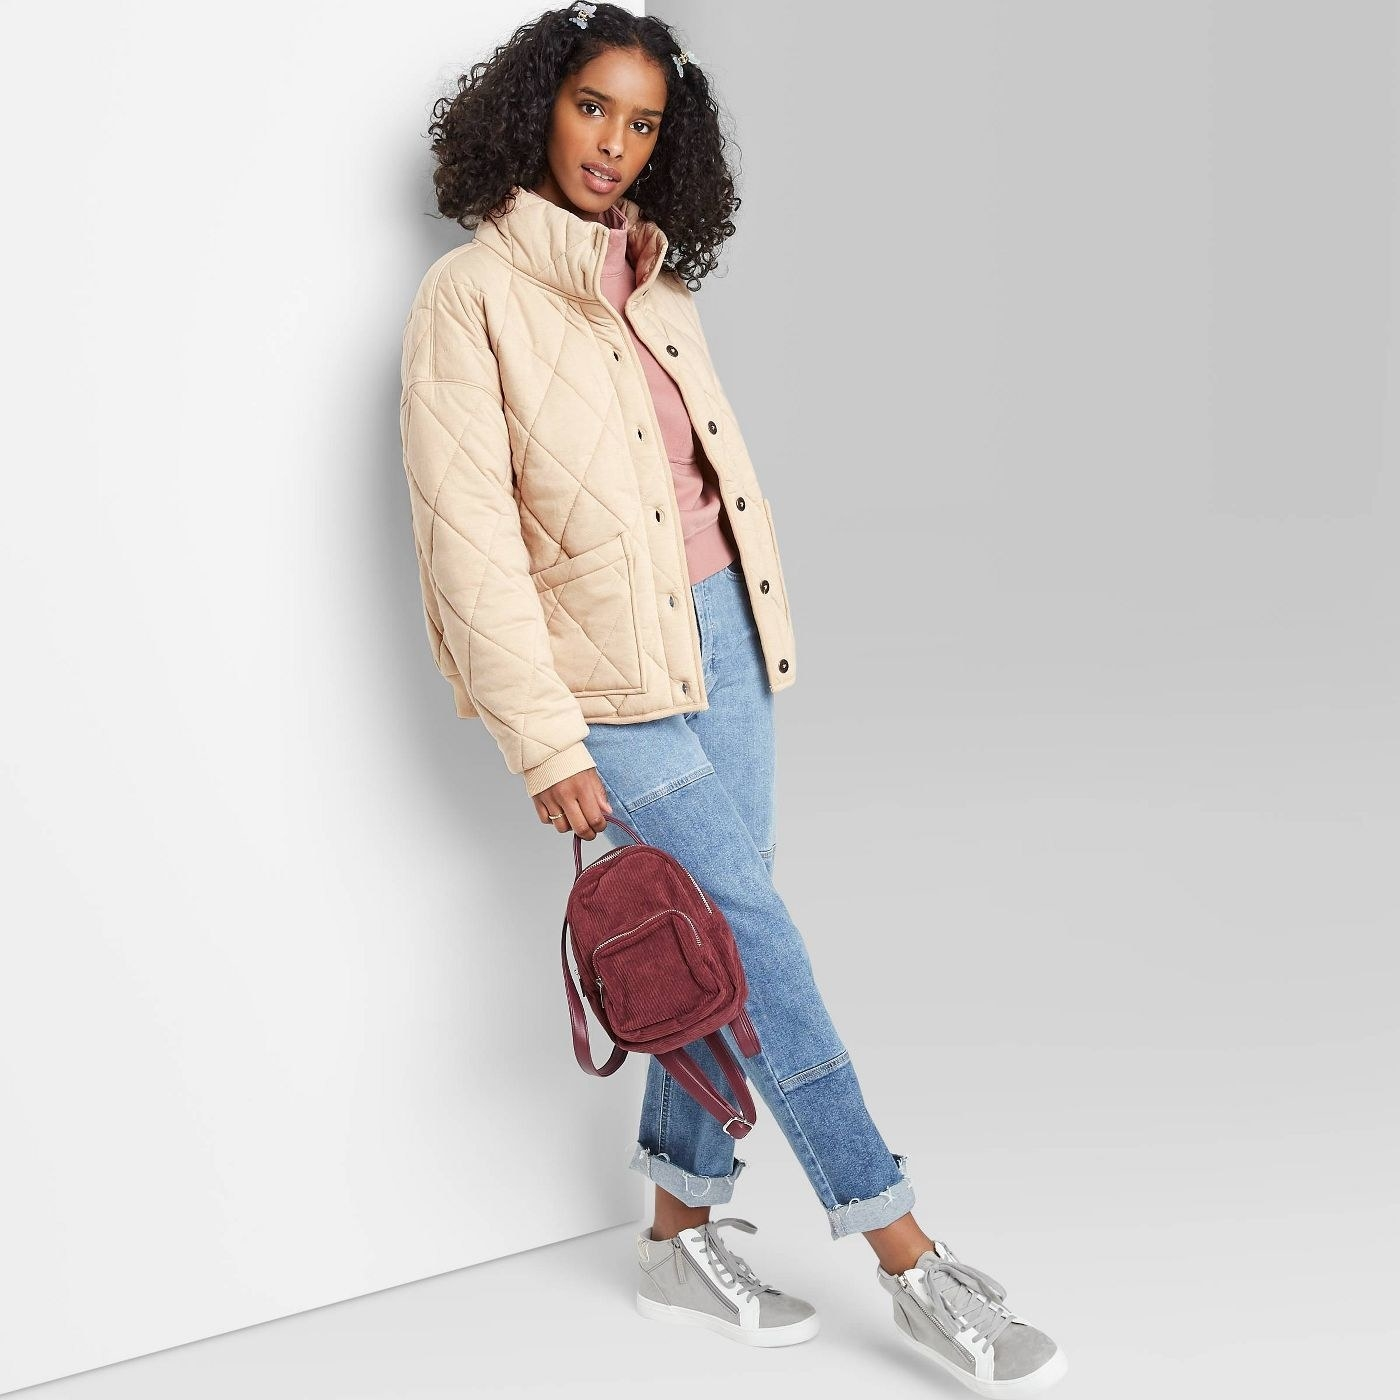 Model in button front quilted jacket